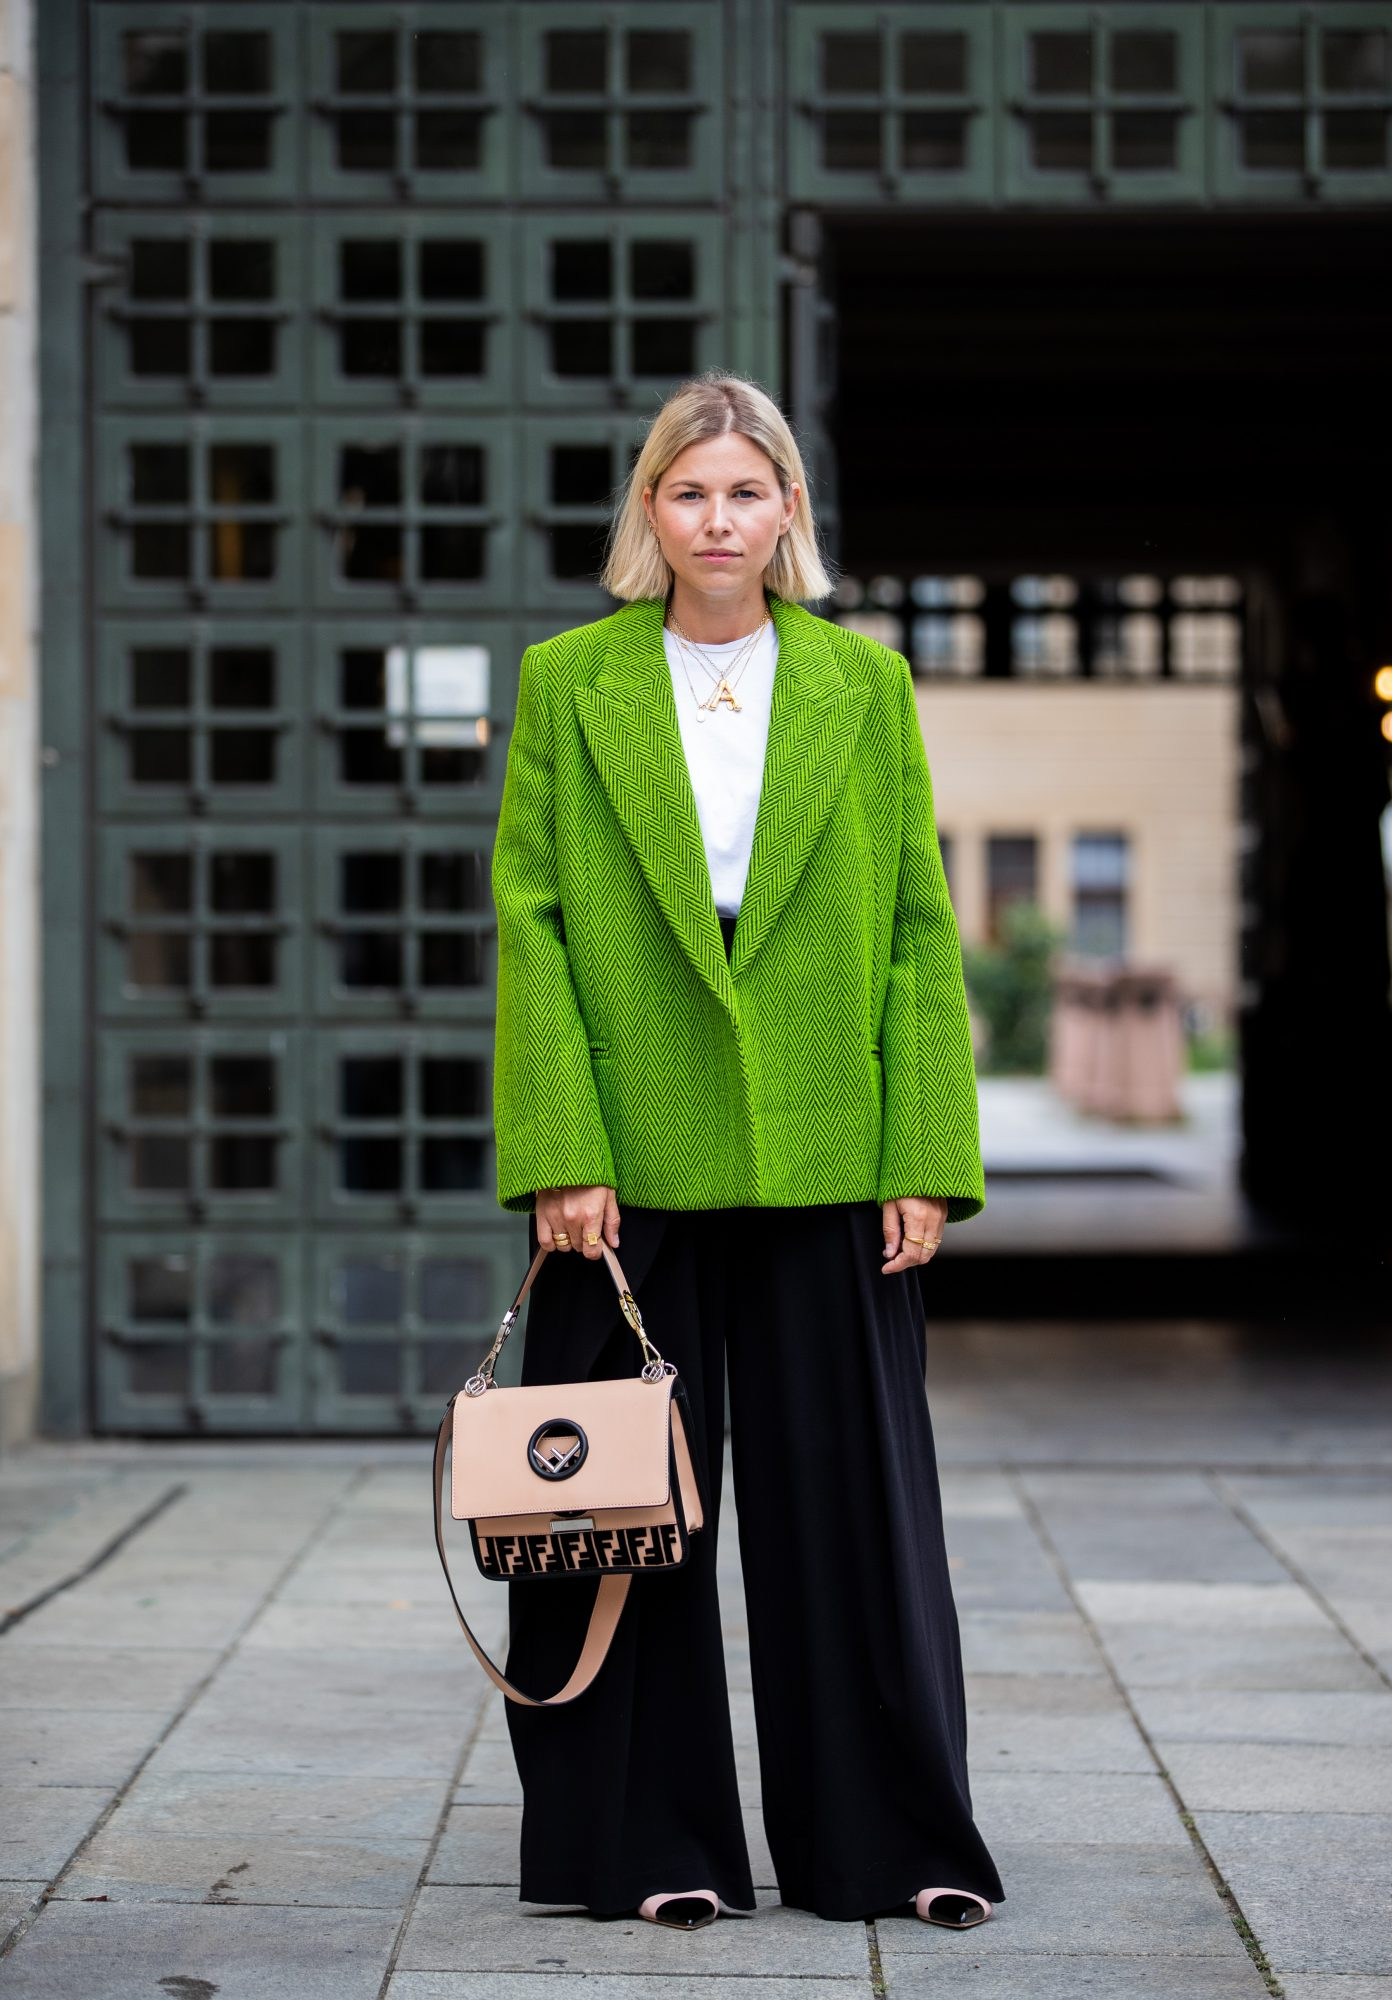 St. Patrick's Day Outfit Ideas, Green Blazer